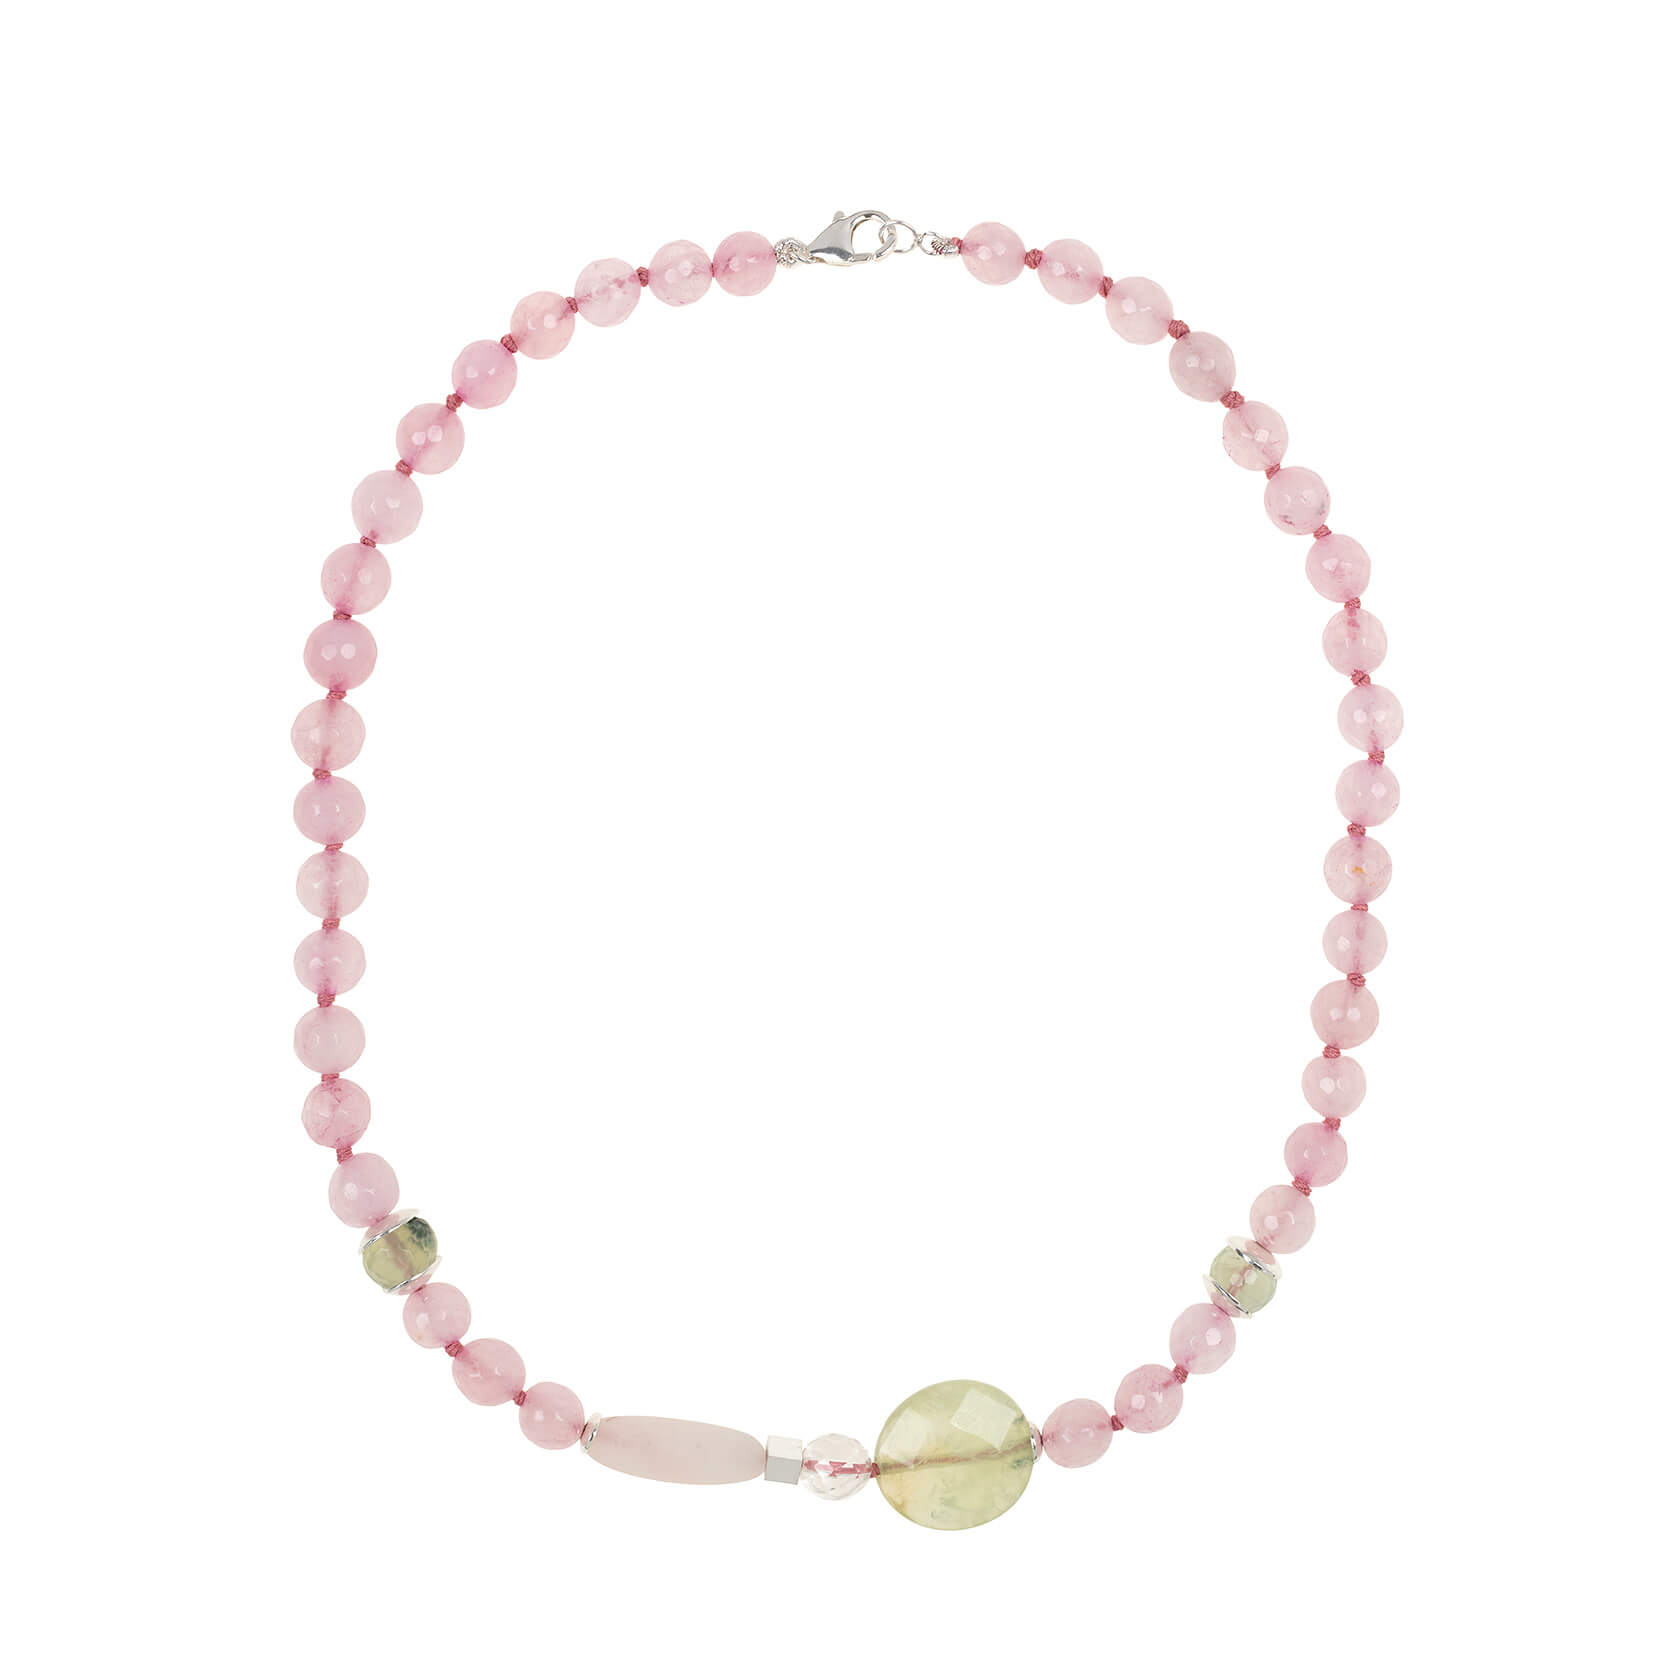 Rose quartz and prehnite necklace